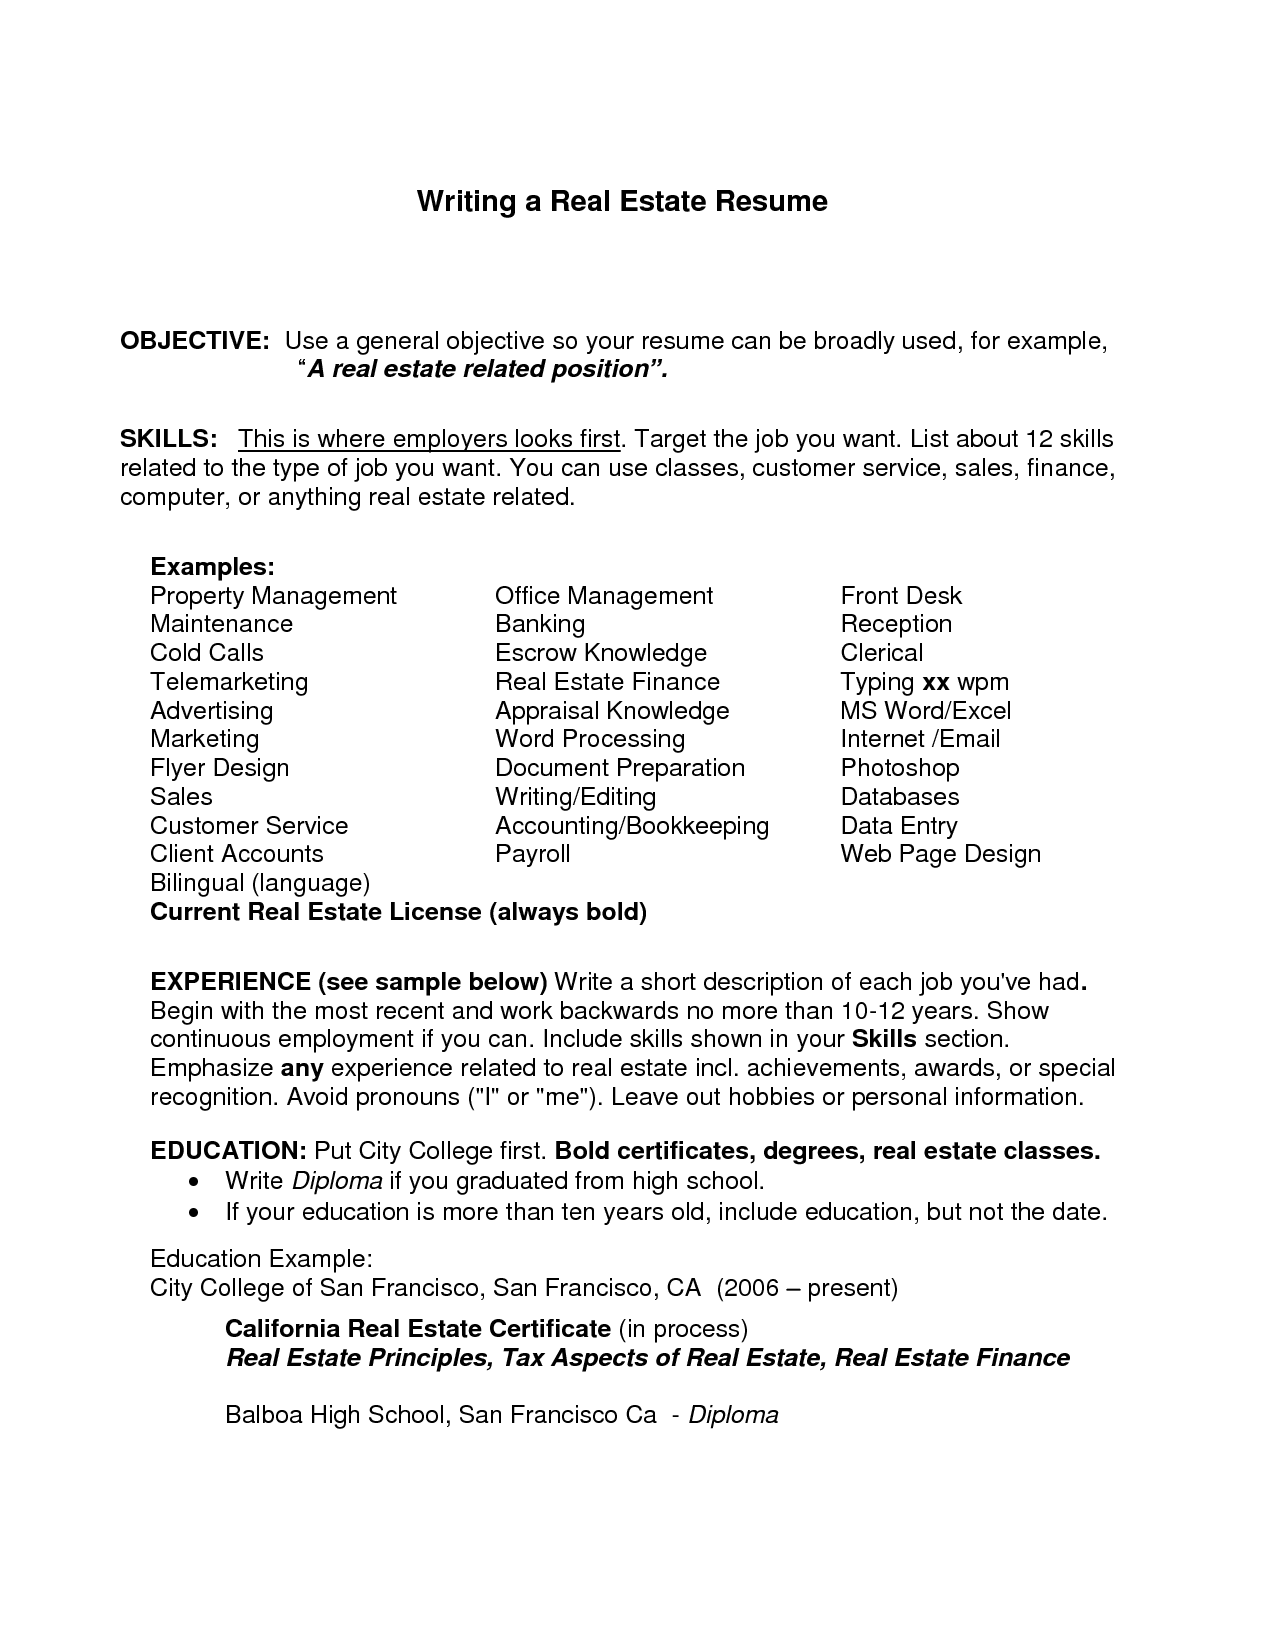 How To Write An Objective For A Resume General Resume Objective Examplesjob Resume Objective Examples